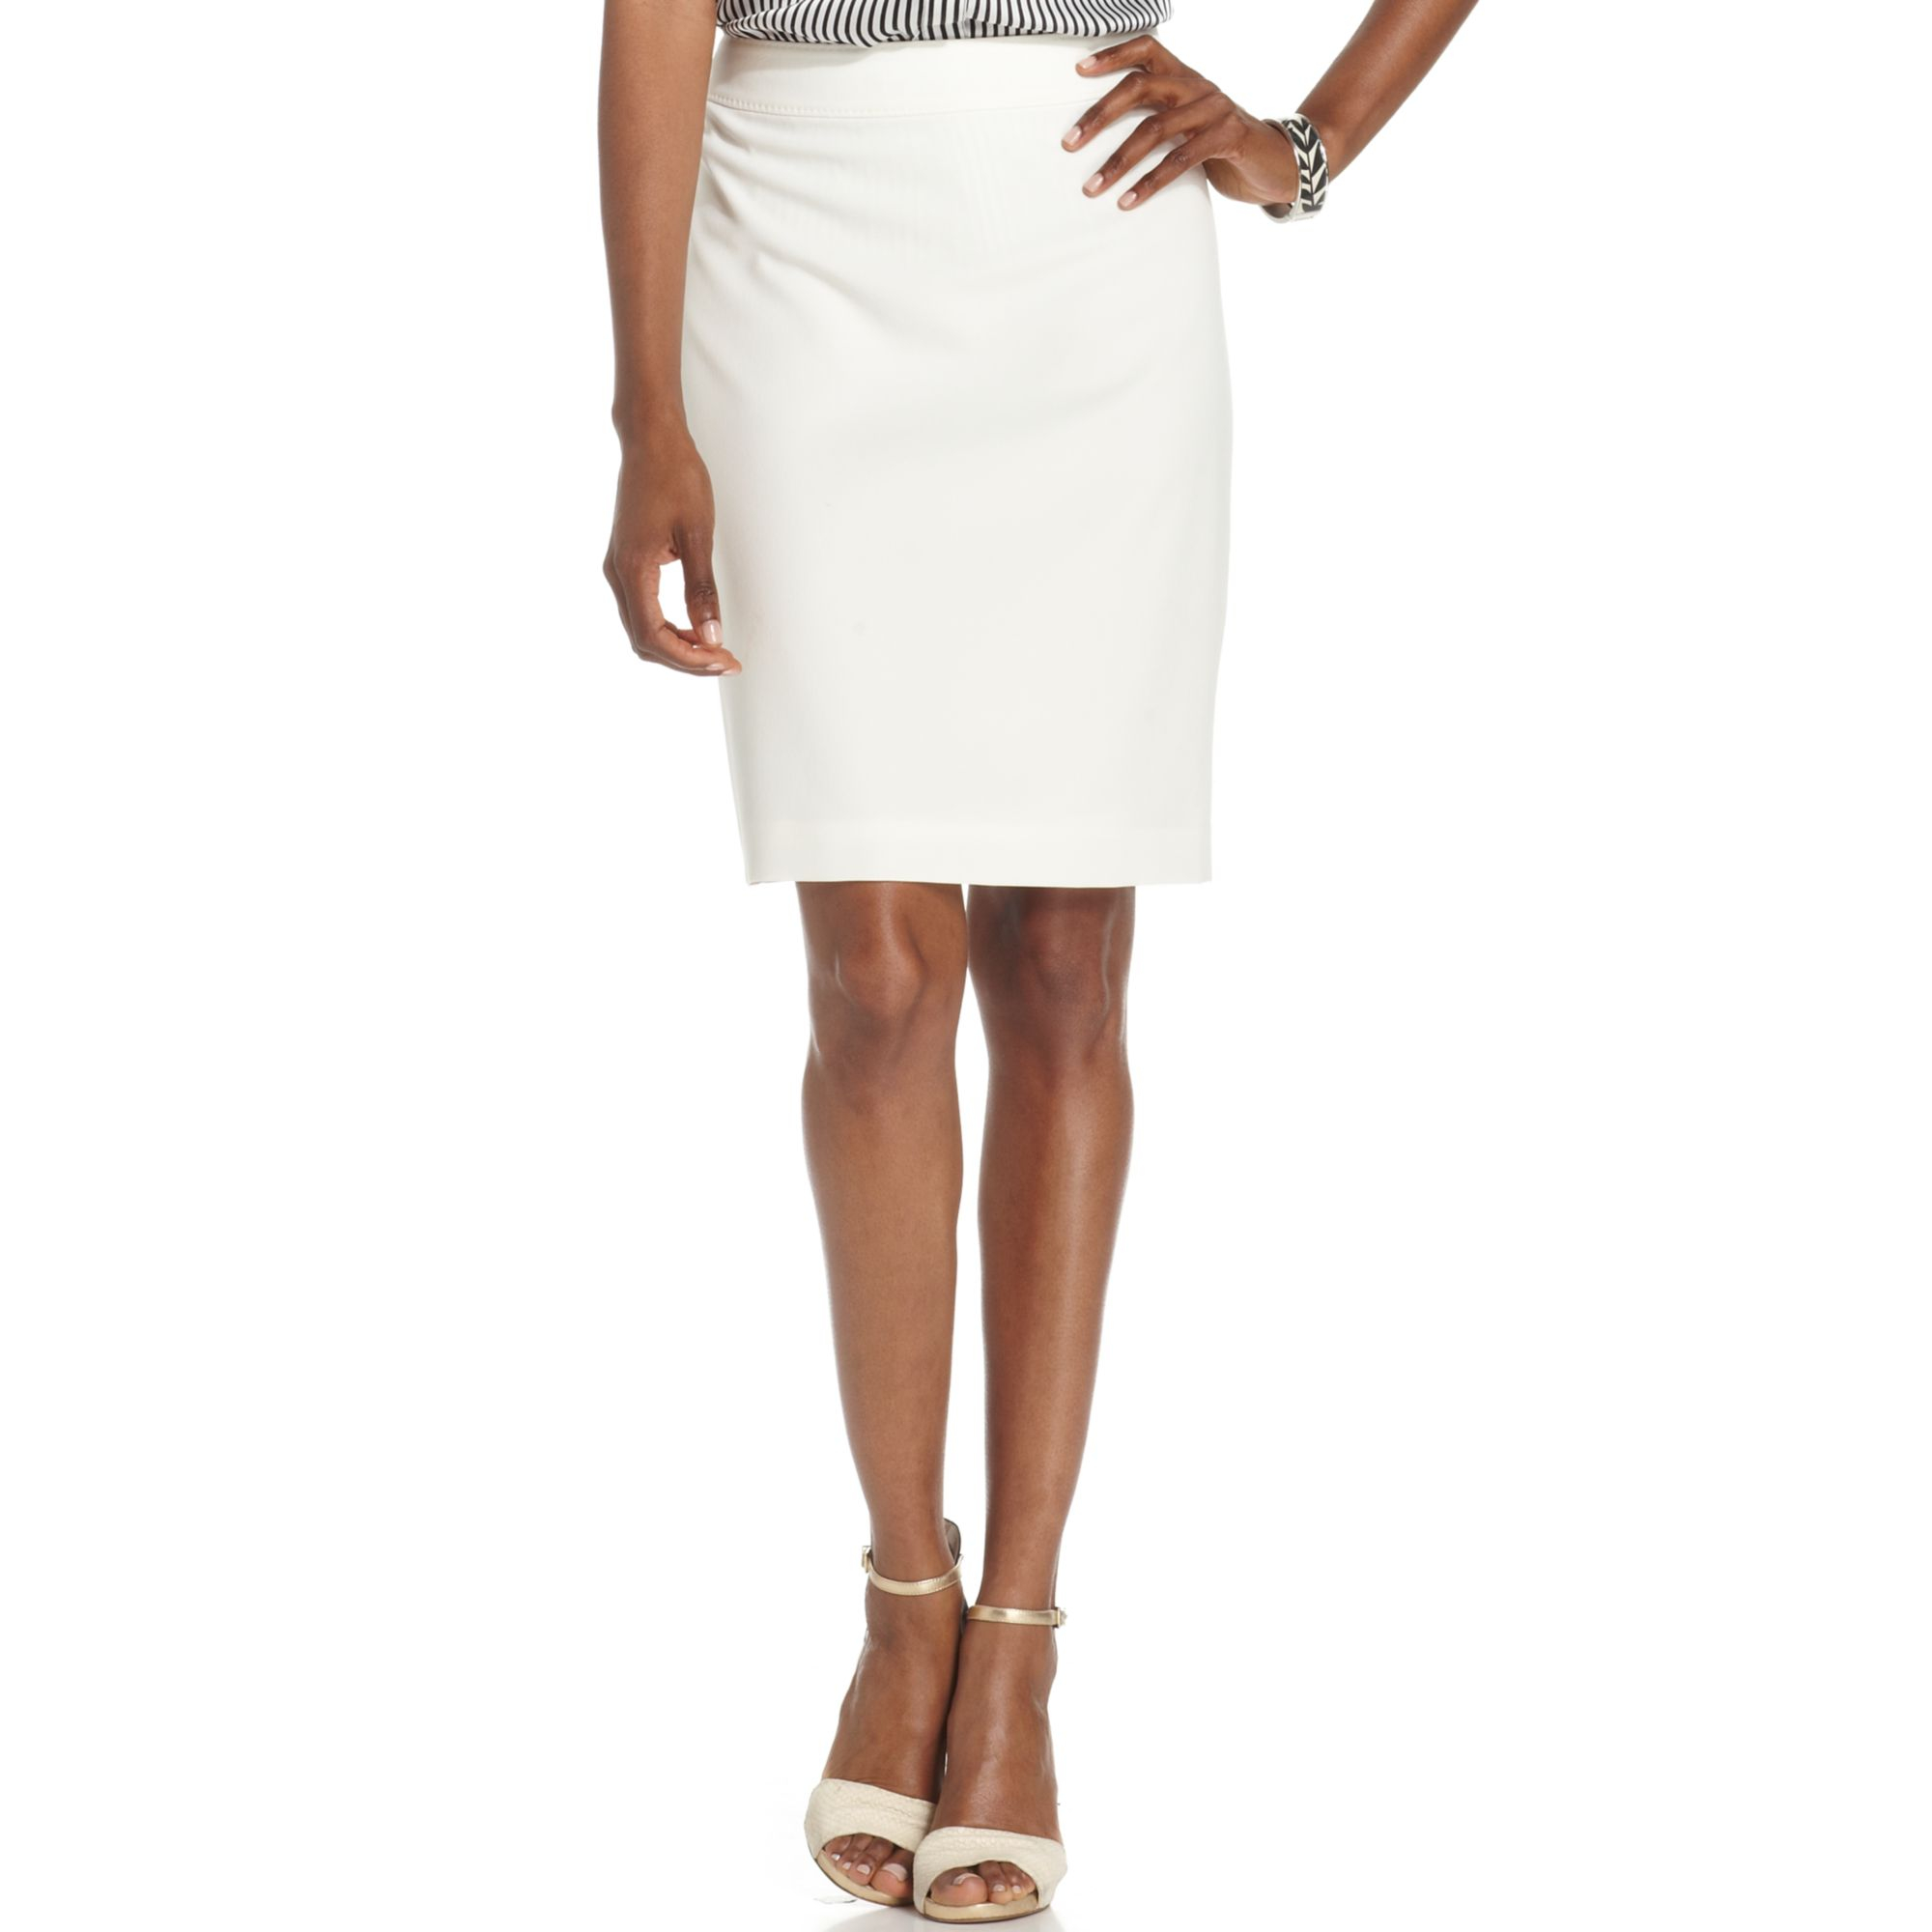 White Stretch Pencil Skirt - Skirts